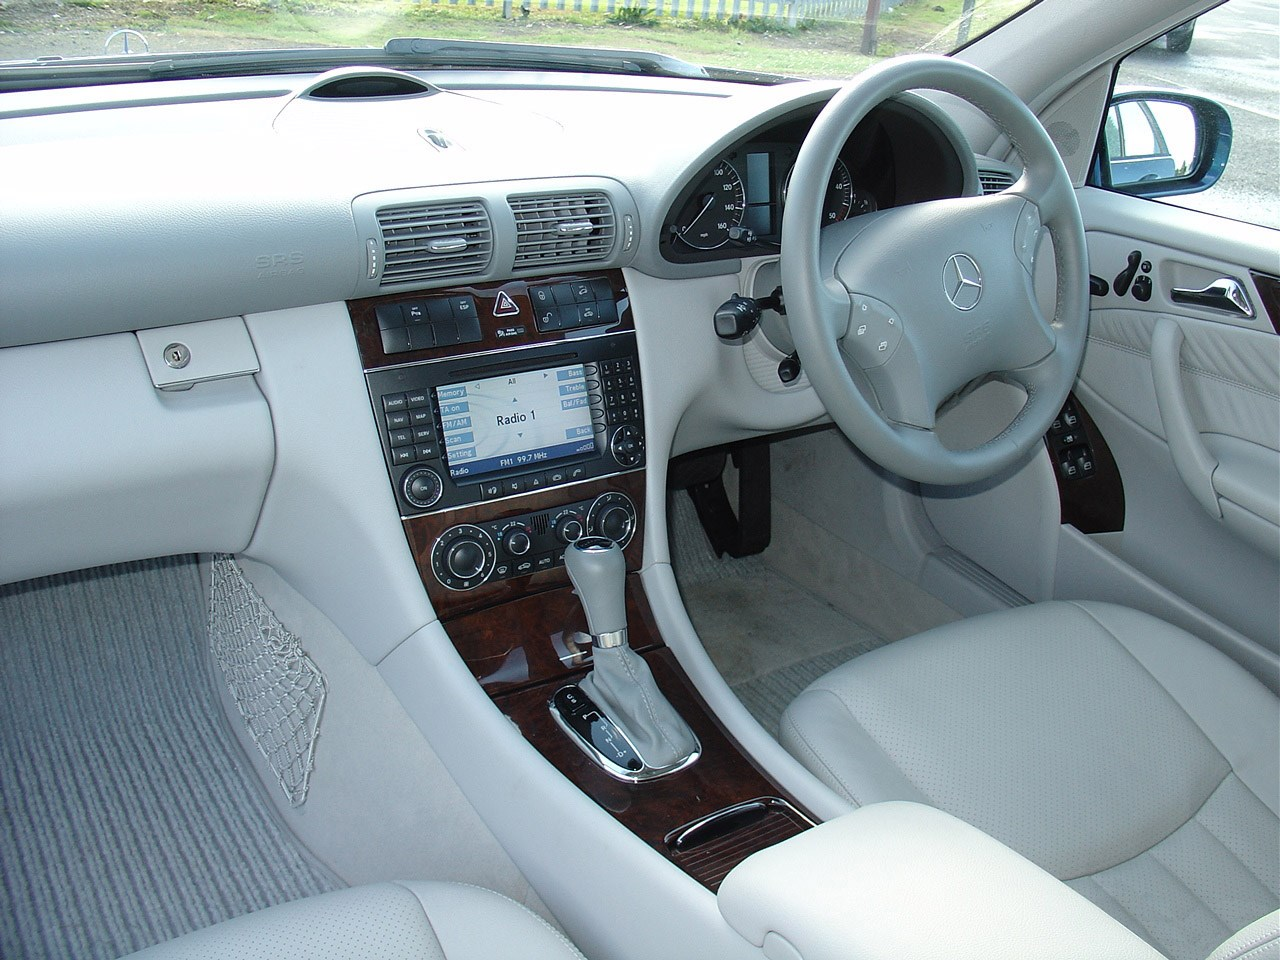 Mercedes benz c class estate 2000 2007 features for How much is a mercedes benz c class